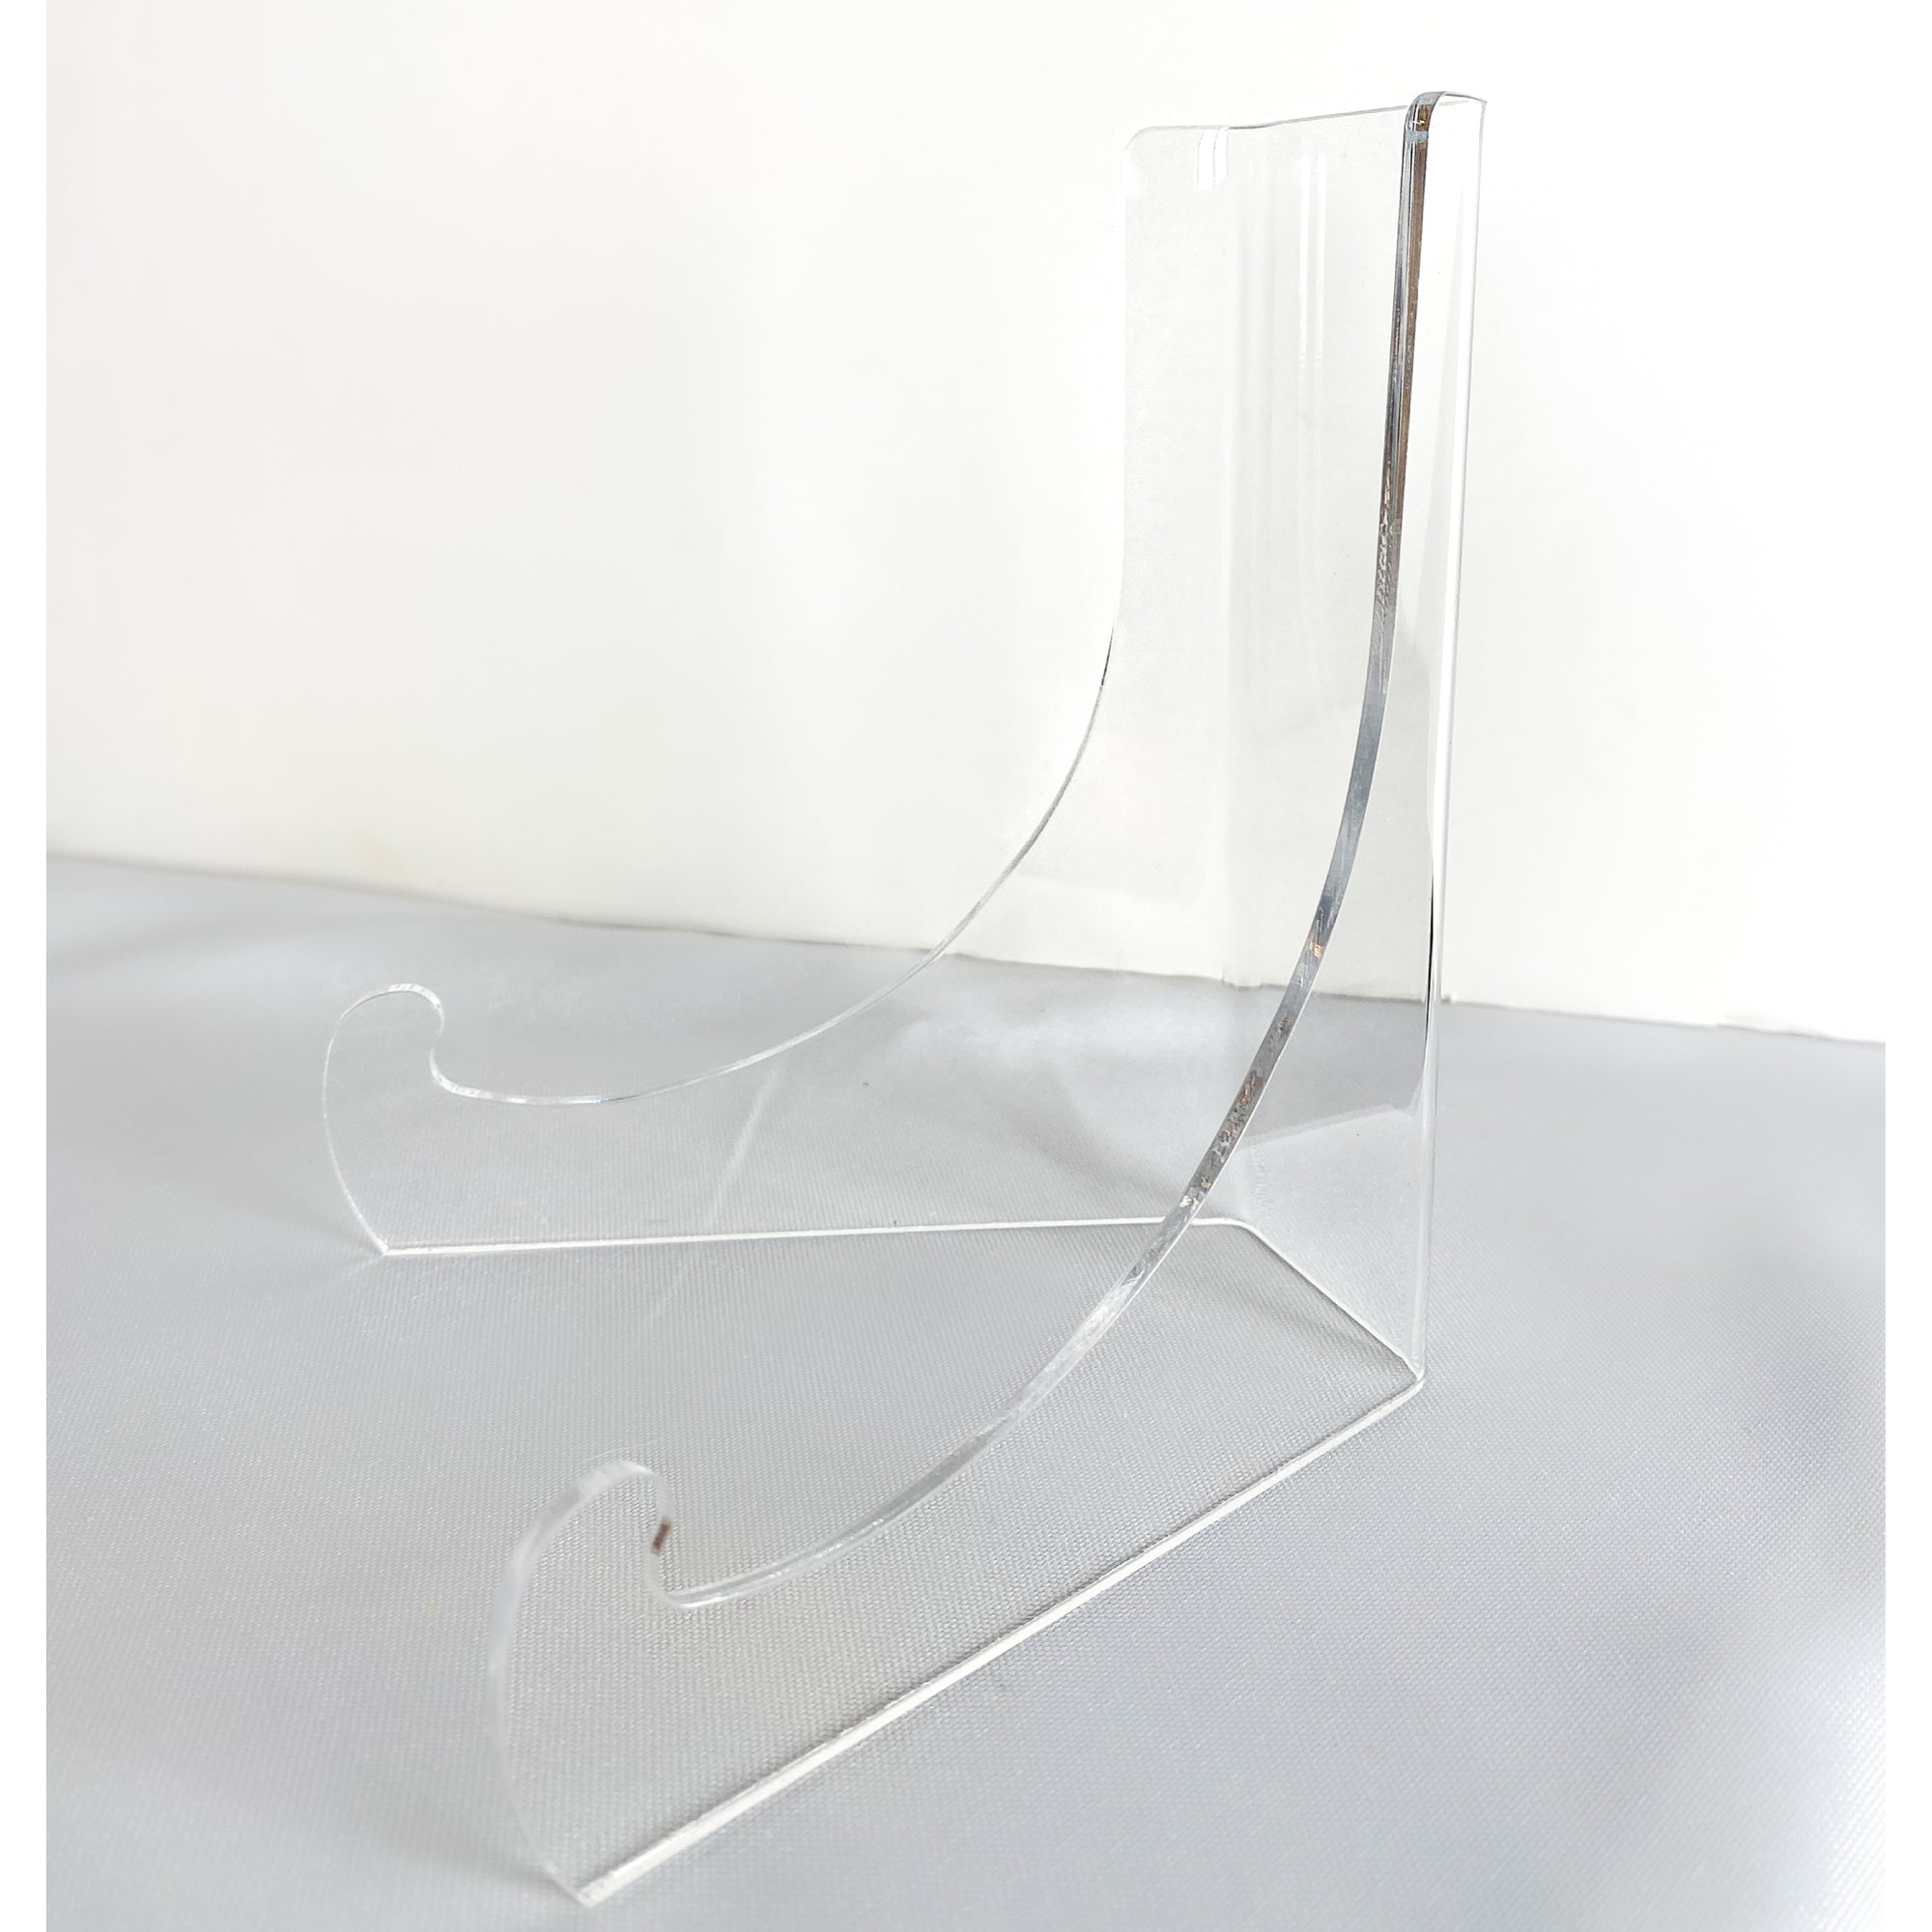 Clear Acrylic Mineral or Fossil Display Stand